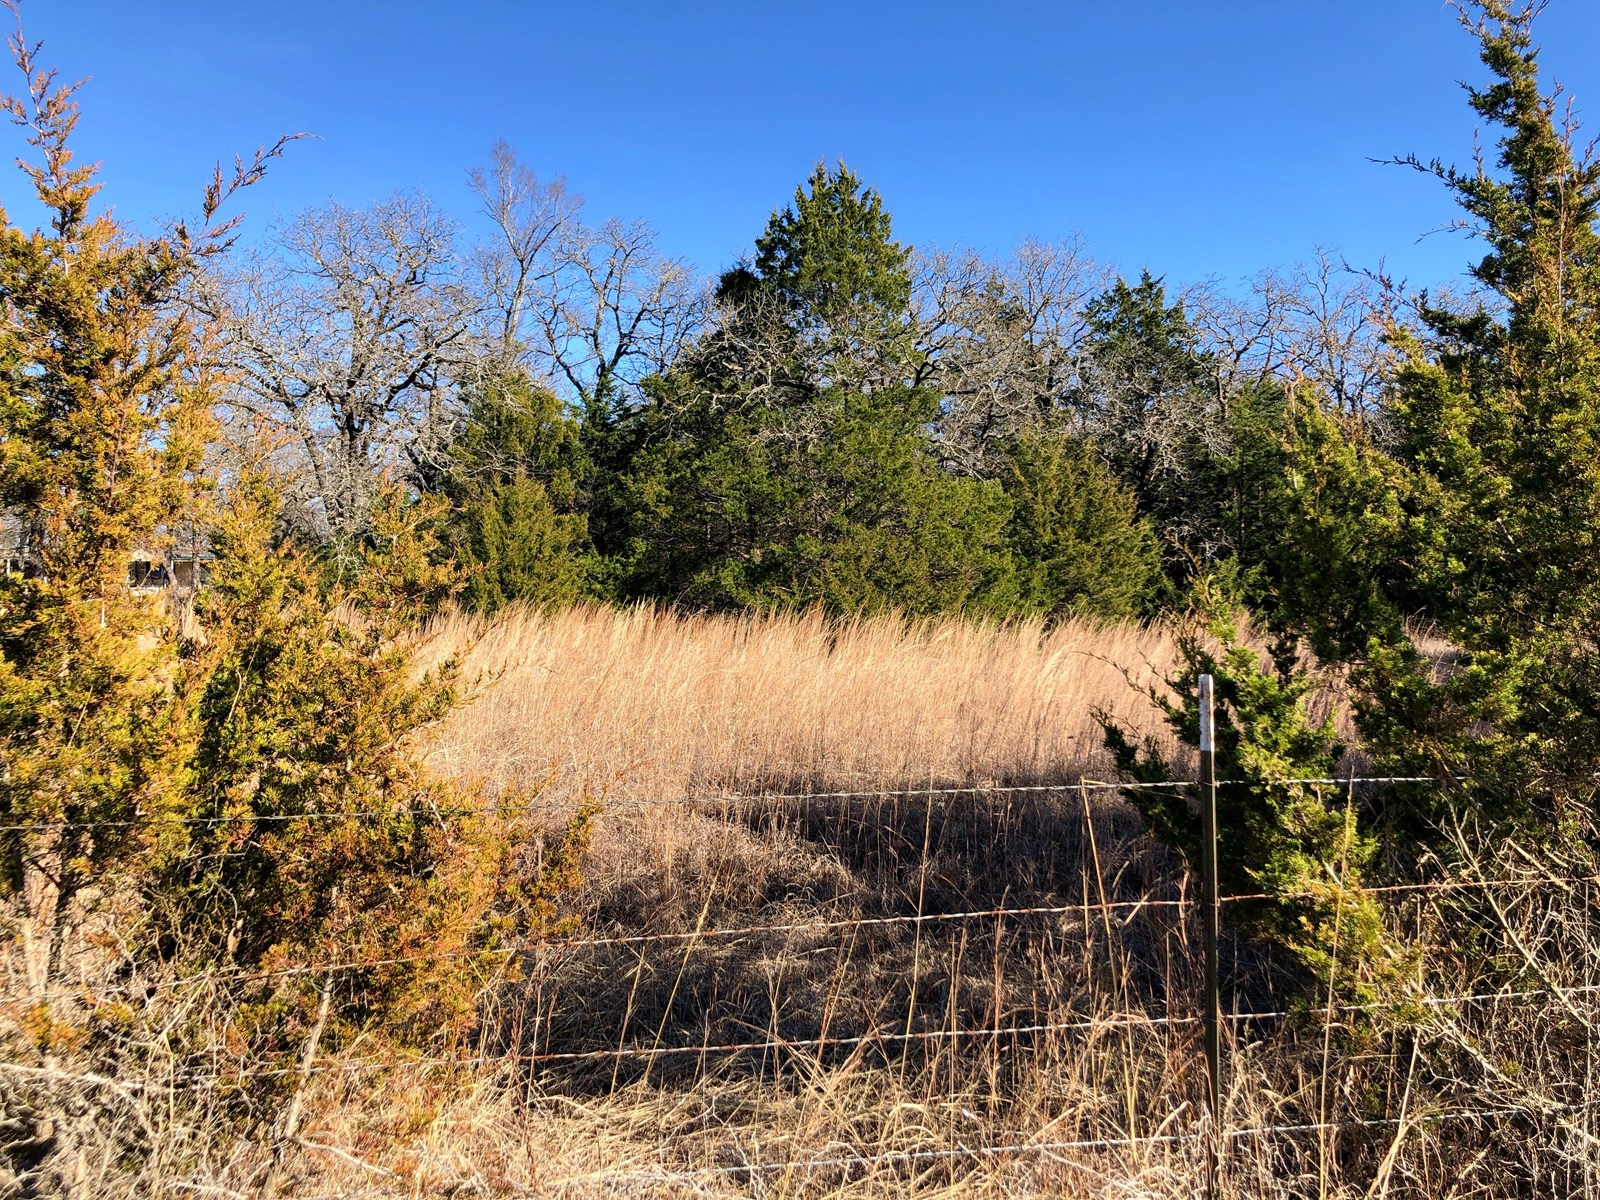 20 ACRES OF RECREATIONAL LAND FOR SALE-TO BOW HUNT OR BUILD